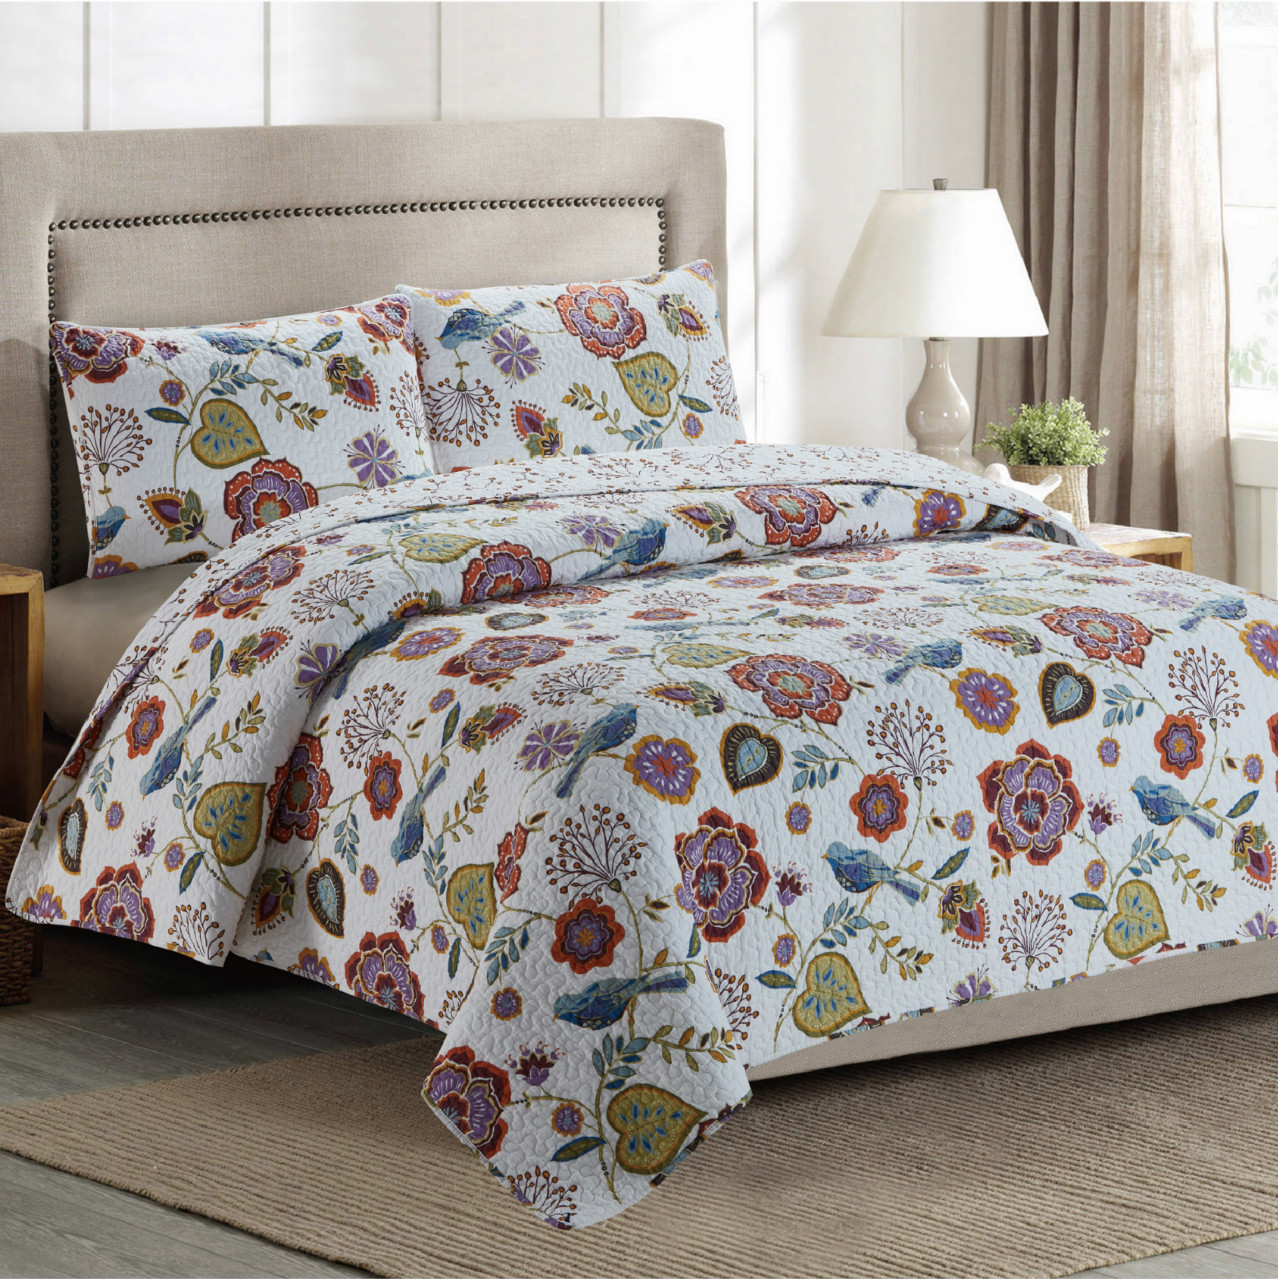 Floral Whole Cloth Quilt - King